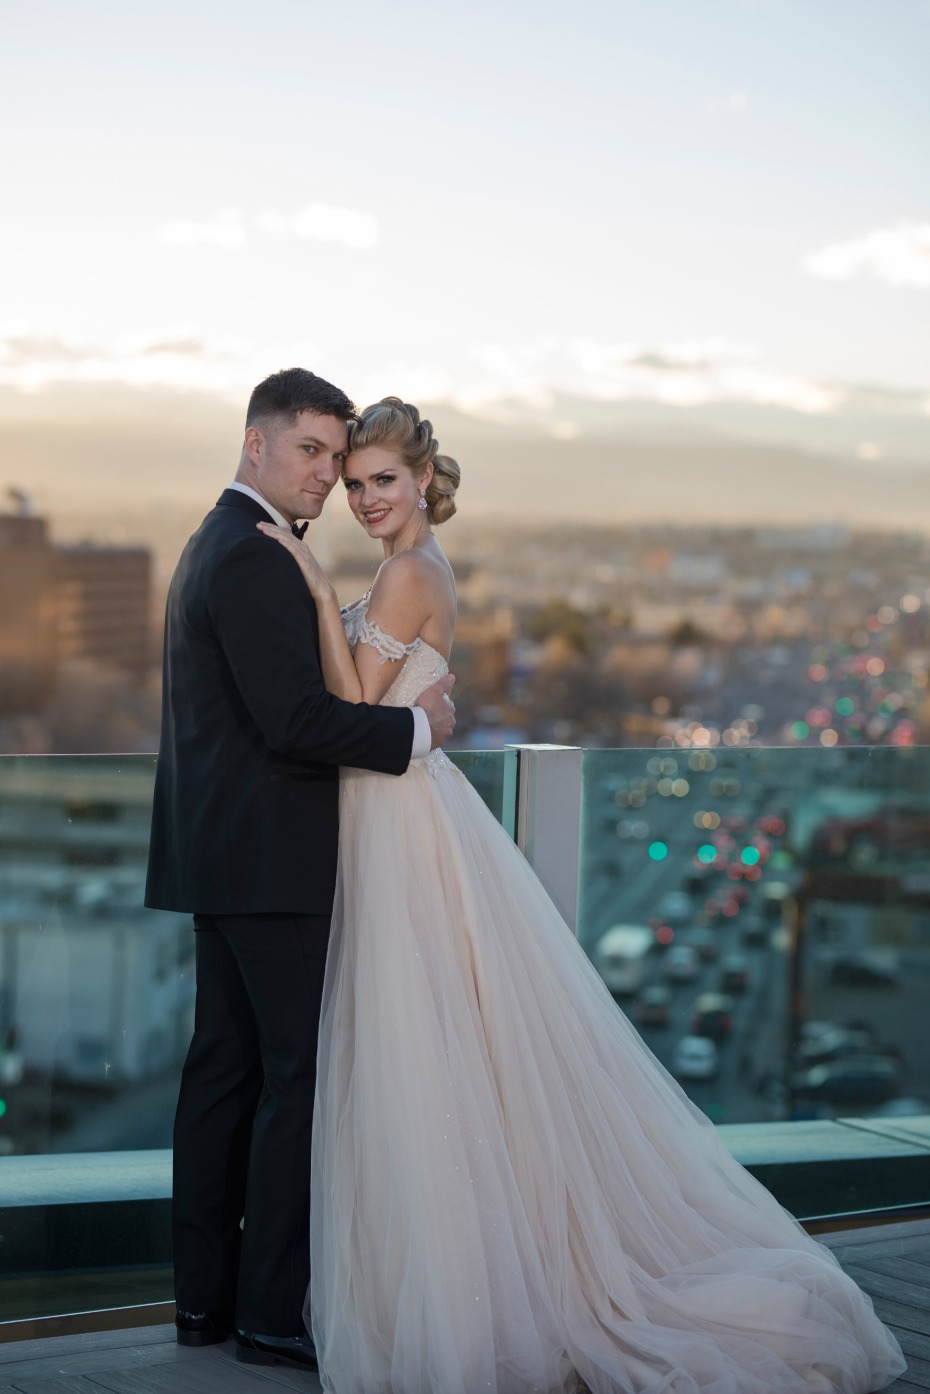 beautiful sunset wedding photo idea